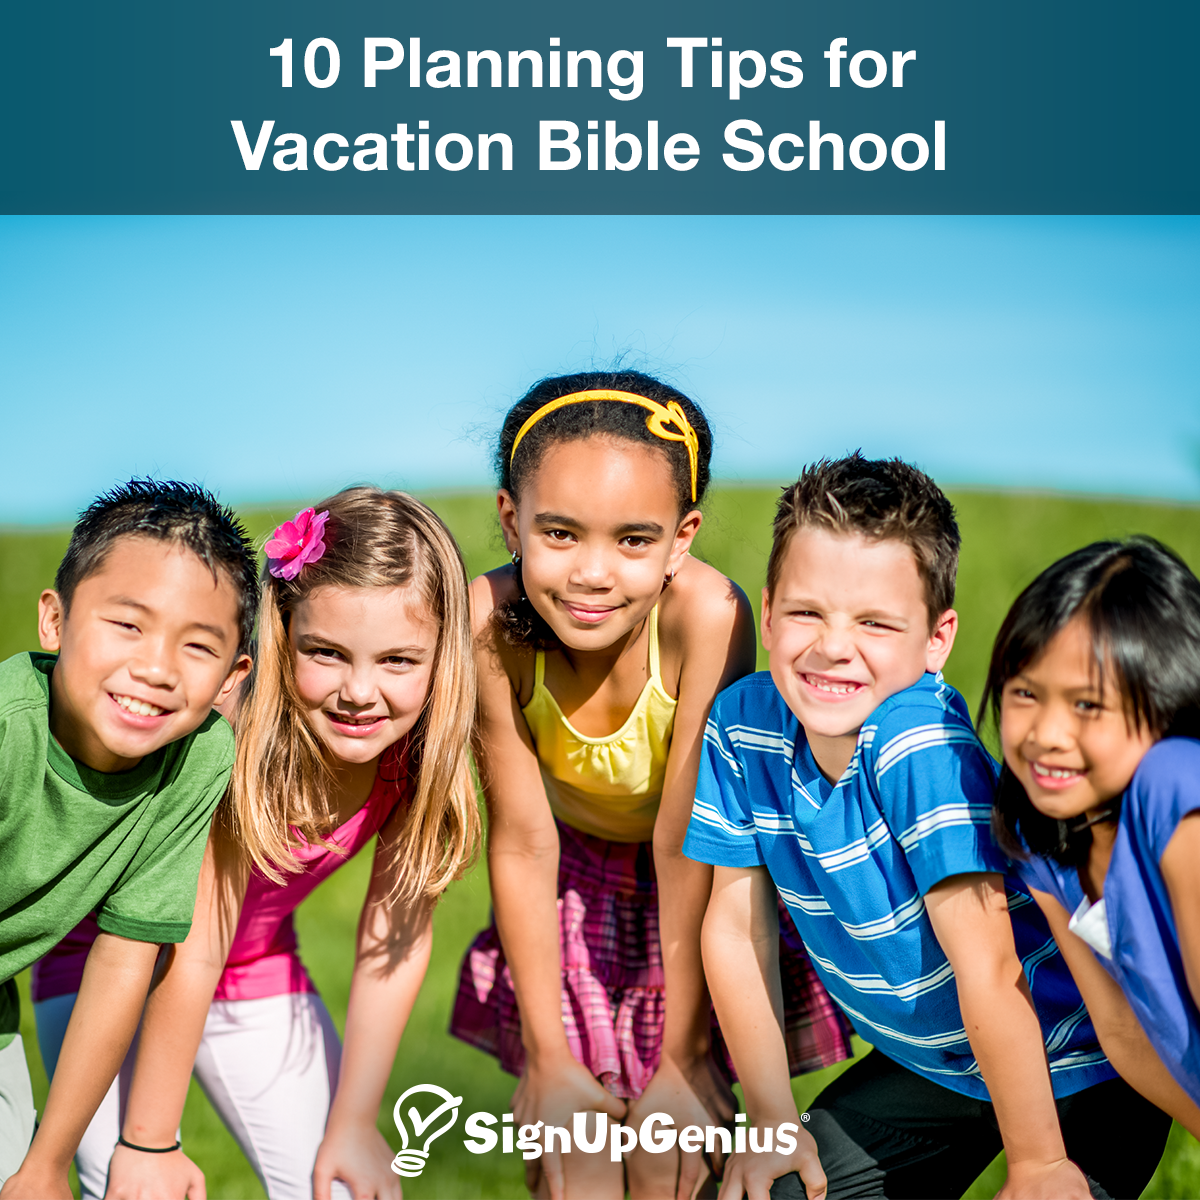 10 Planning Tips for Vacation Bible School. Have a successful week with these ideas and organizational strategies.